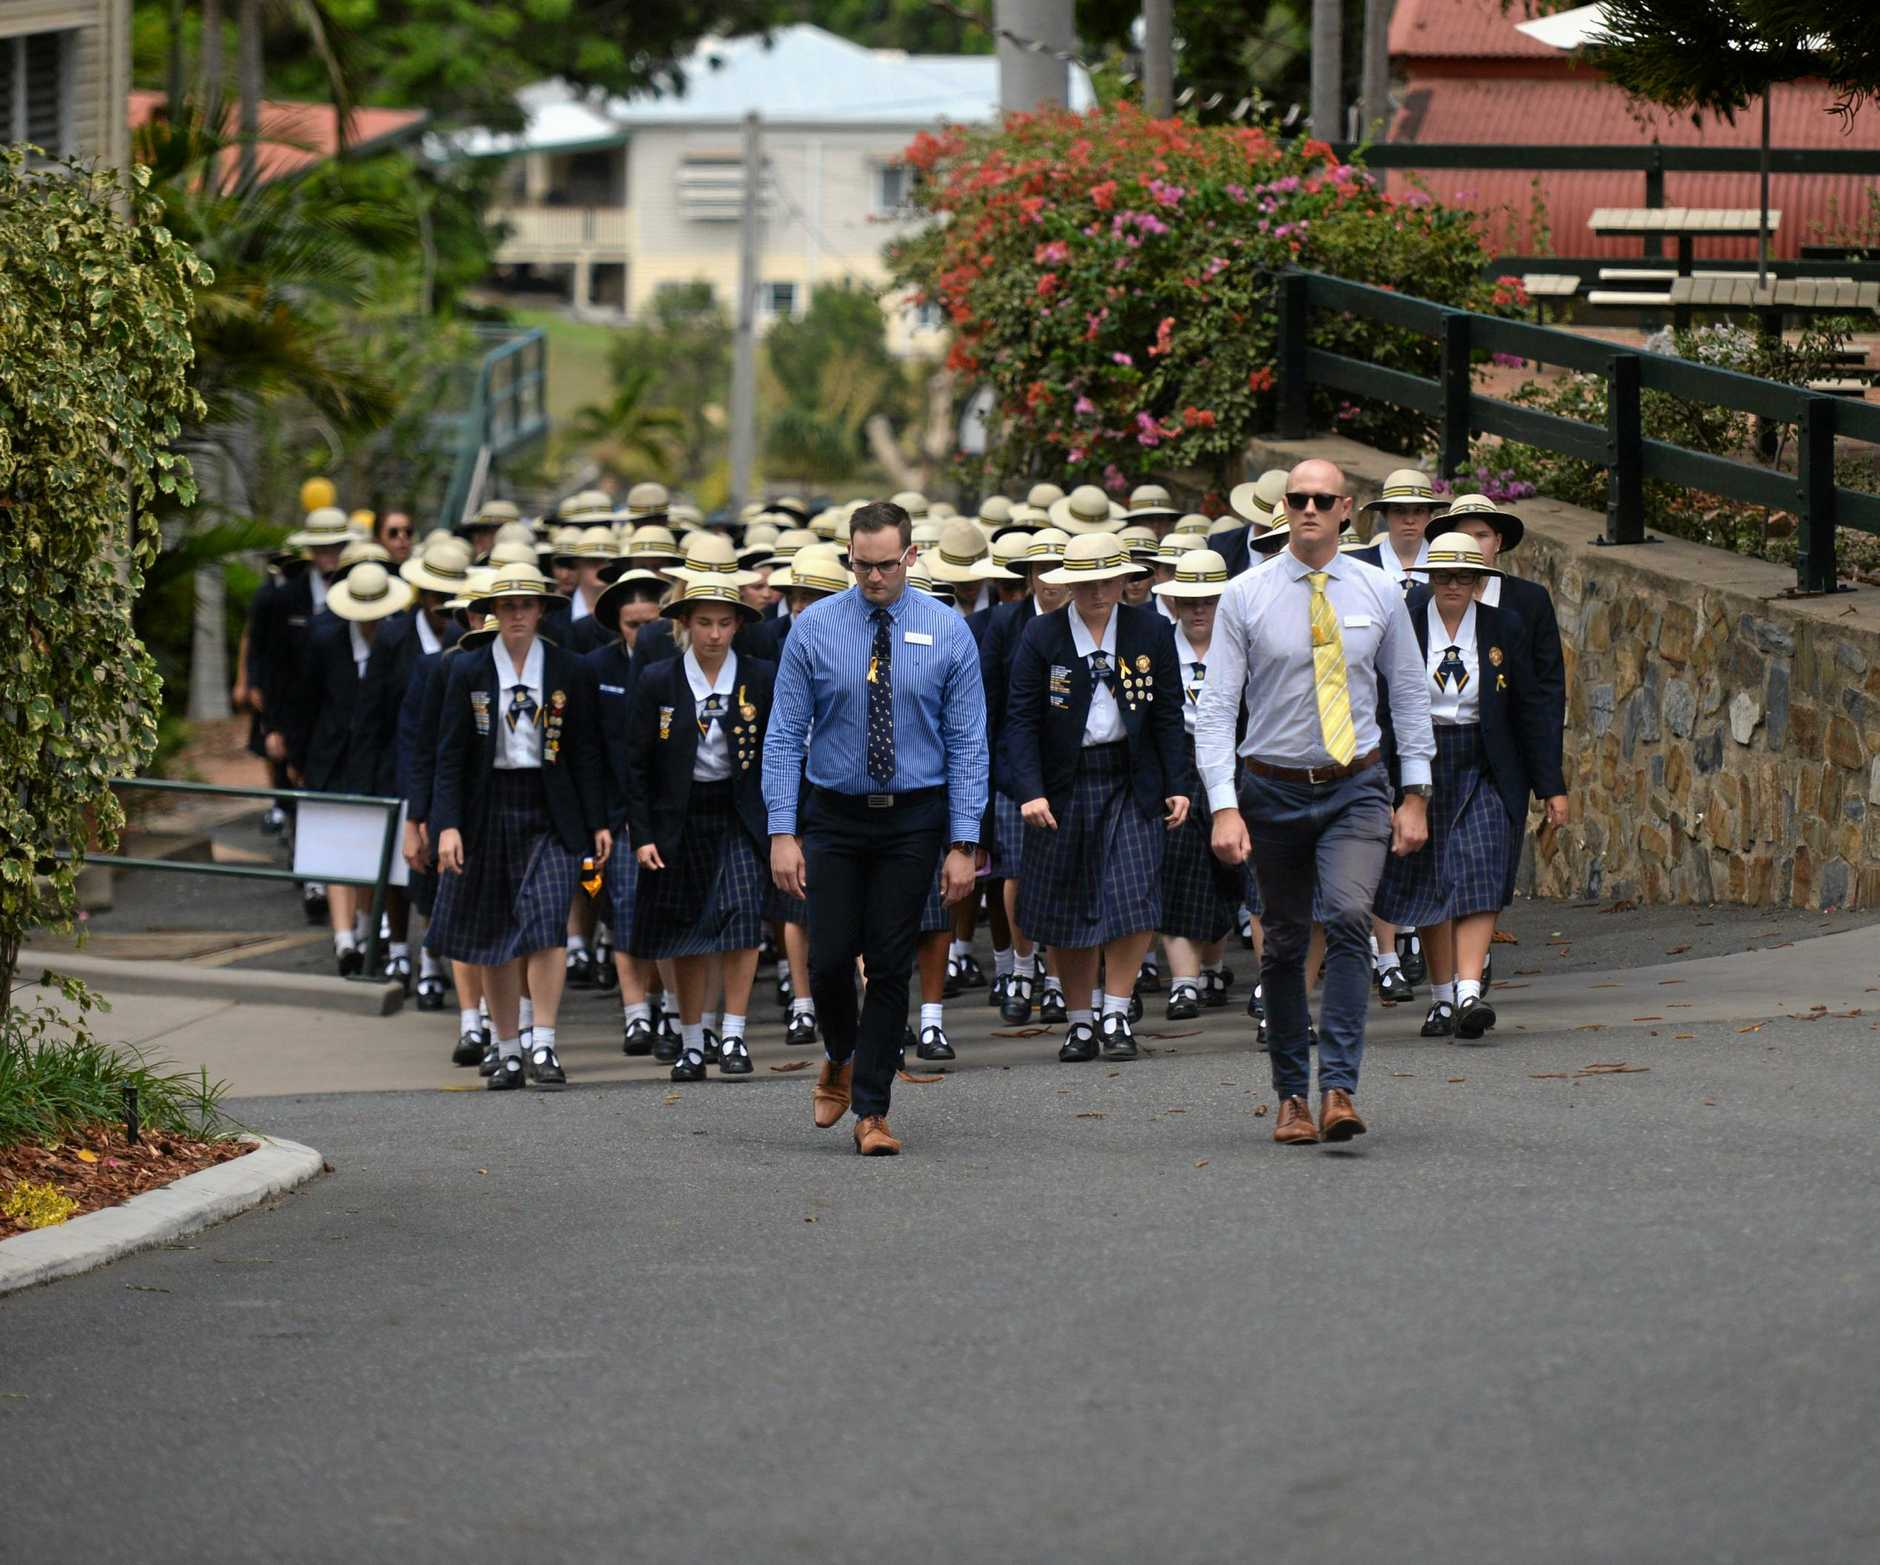 Rockhampton Girls Grammar School students march up to a service celebrating the lives of Bev and Olivia Harwood.